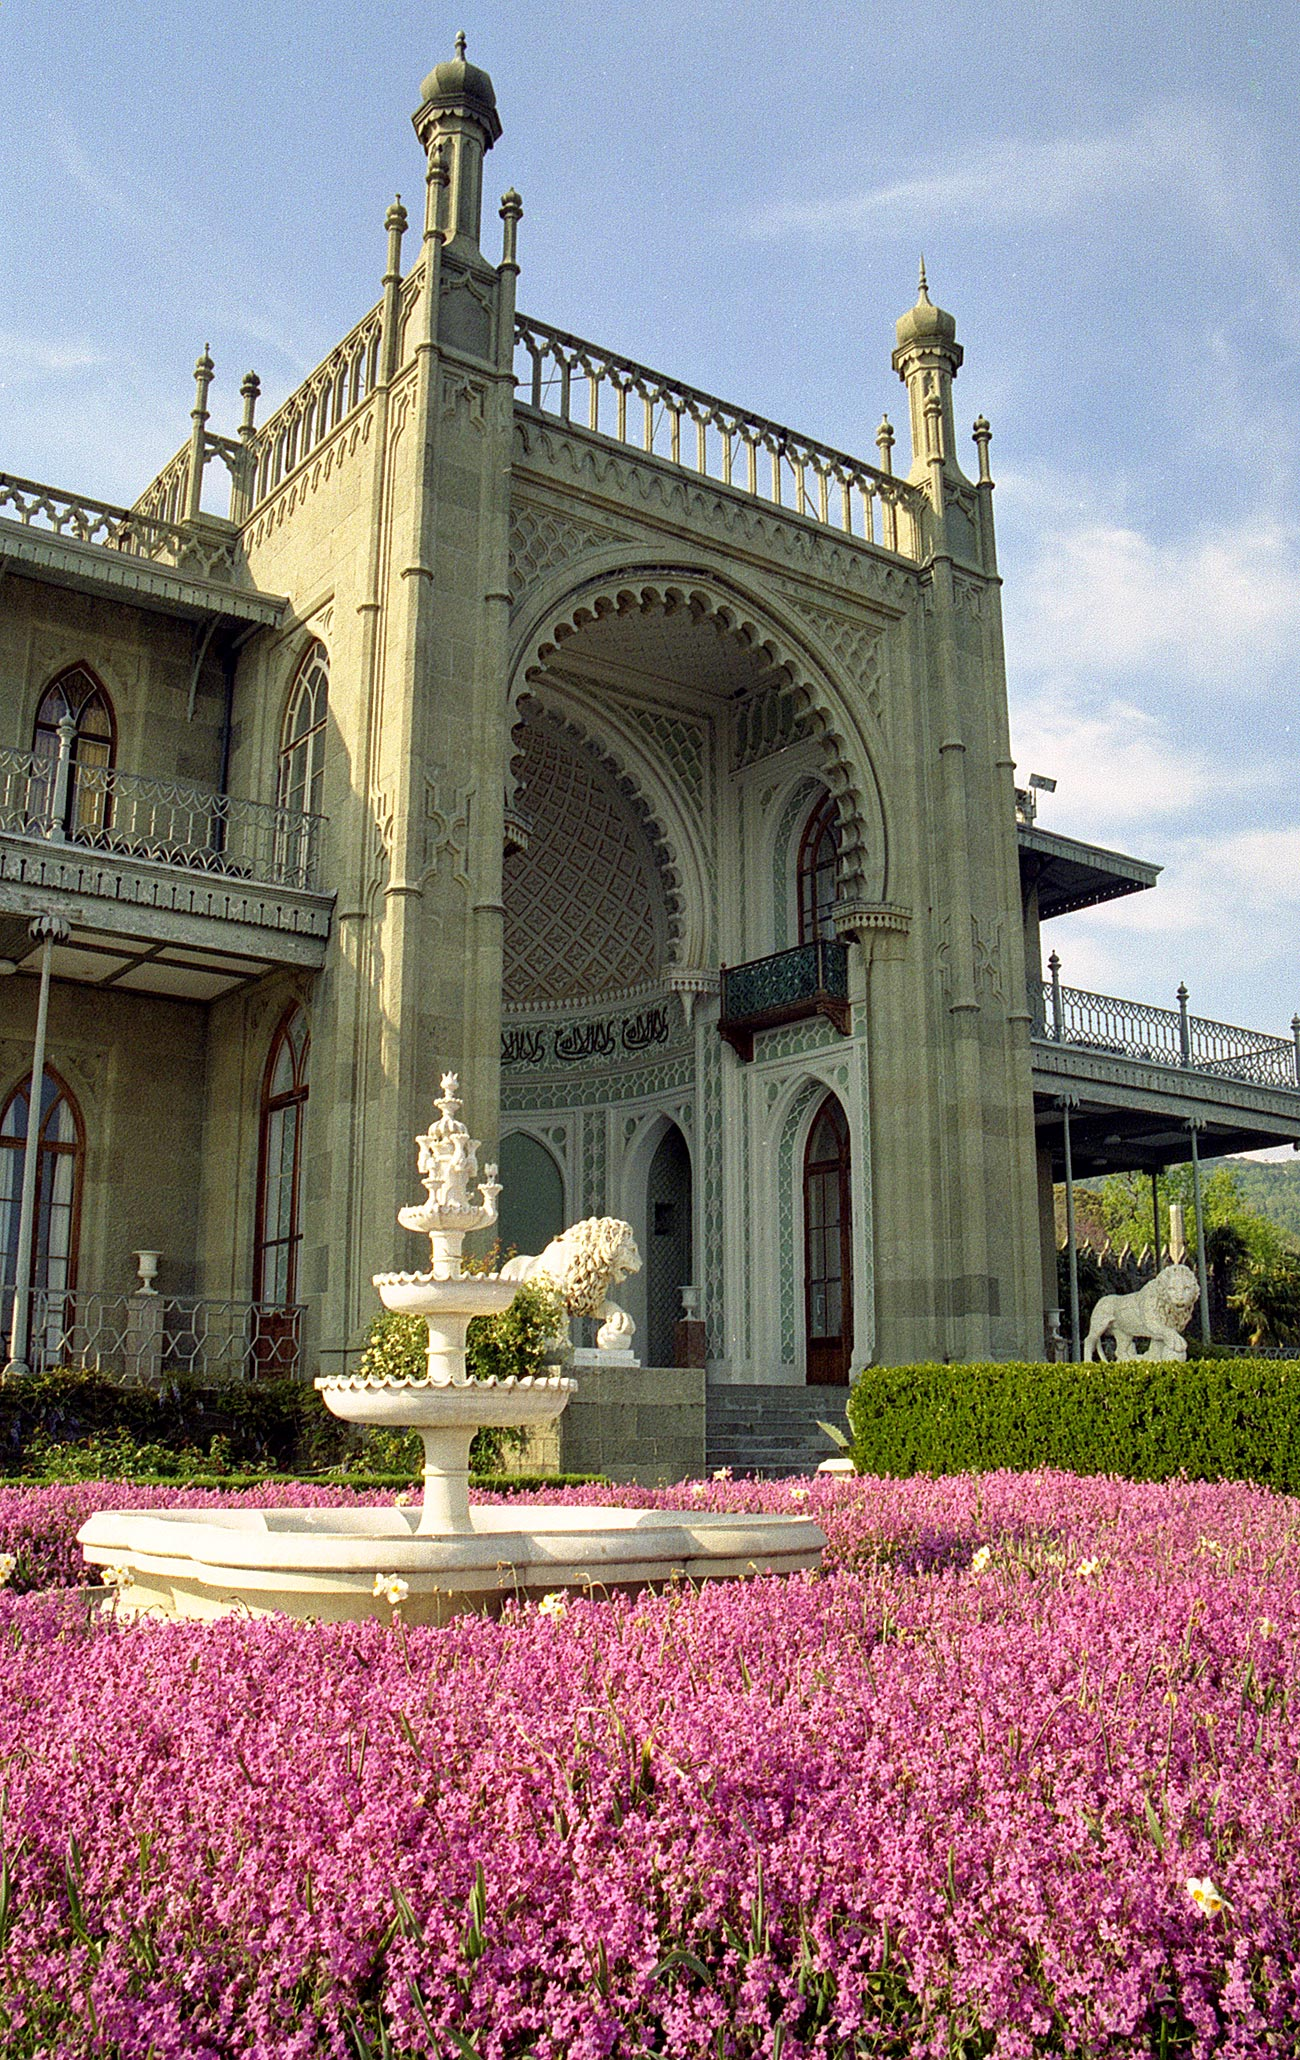 South facade of the palace. Source: Server Amzayev/Global Look Press